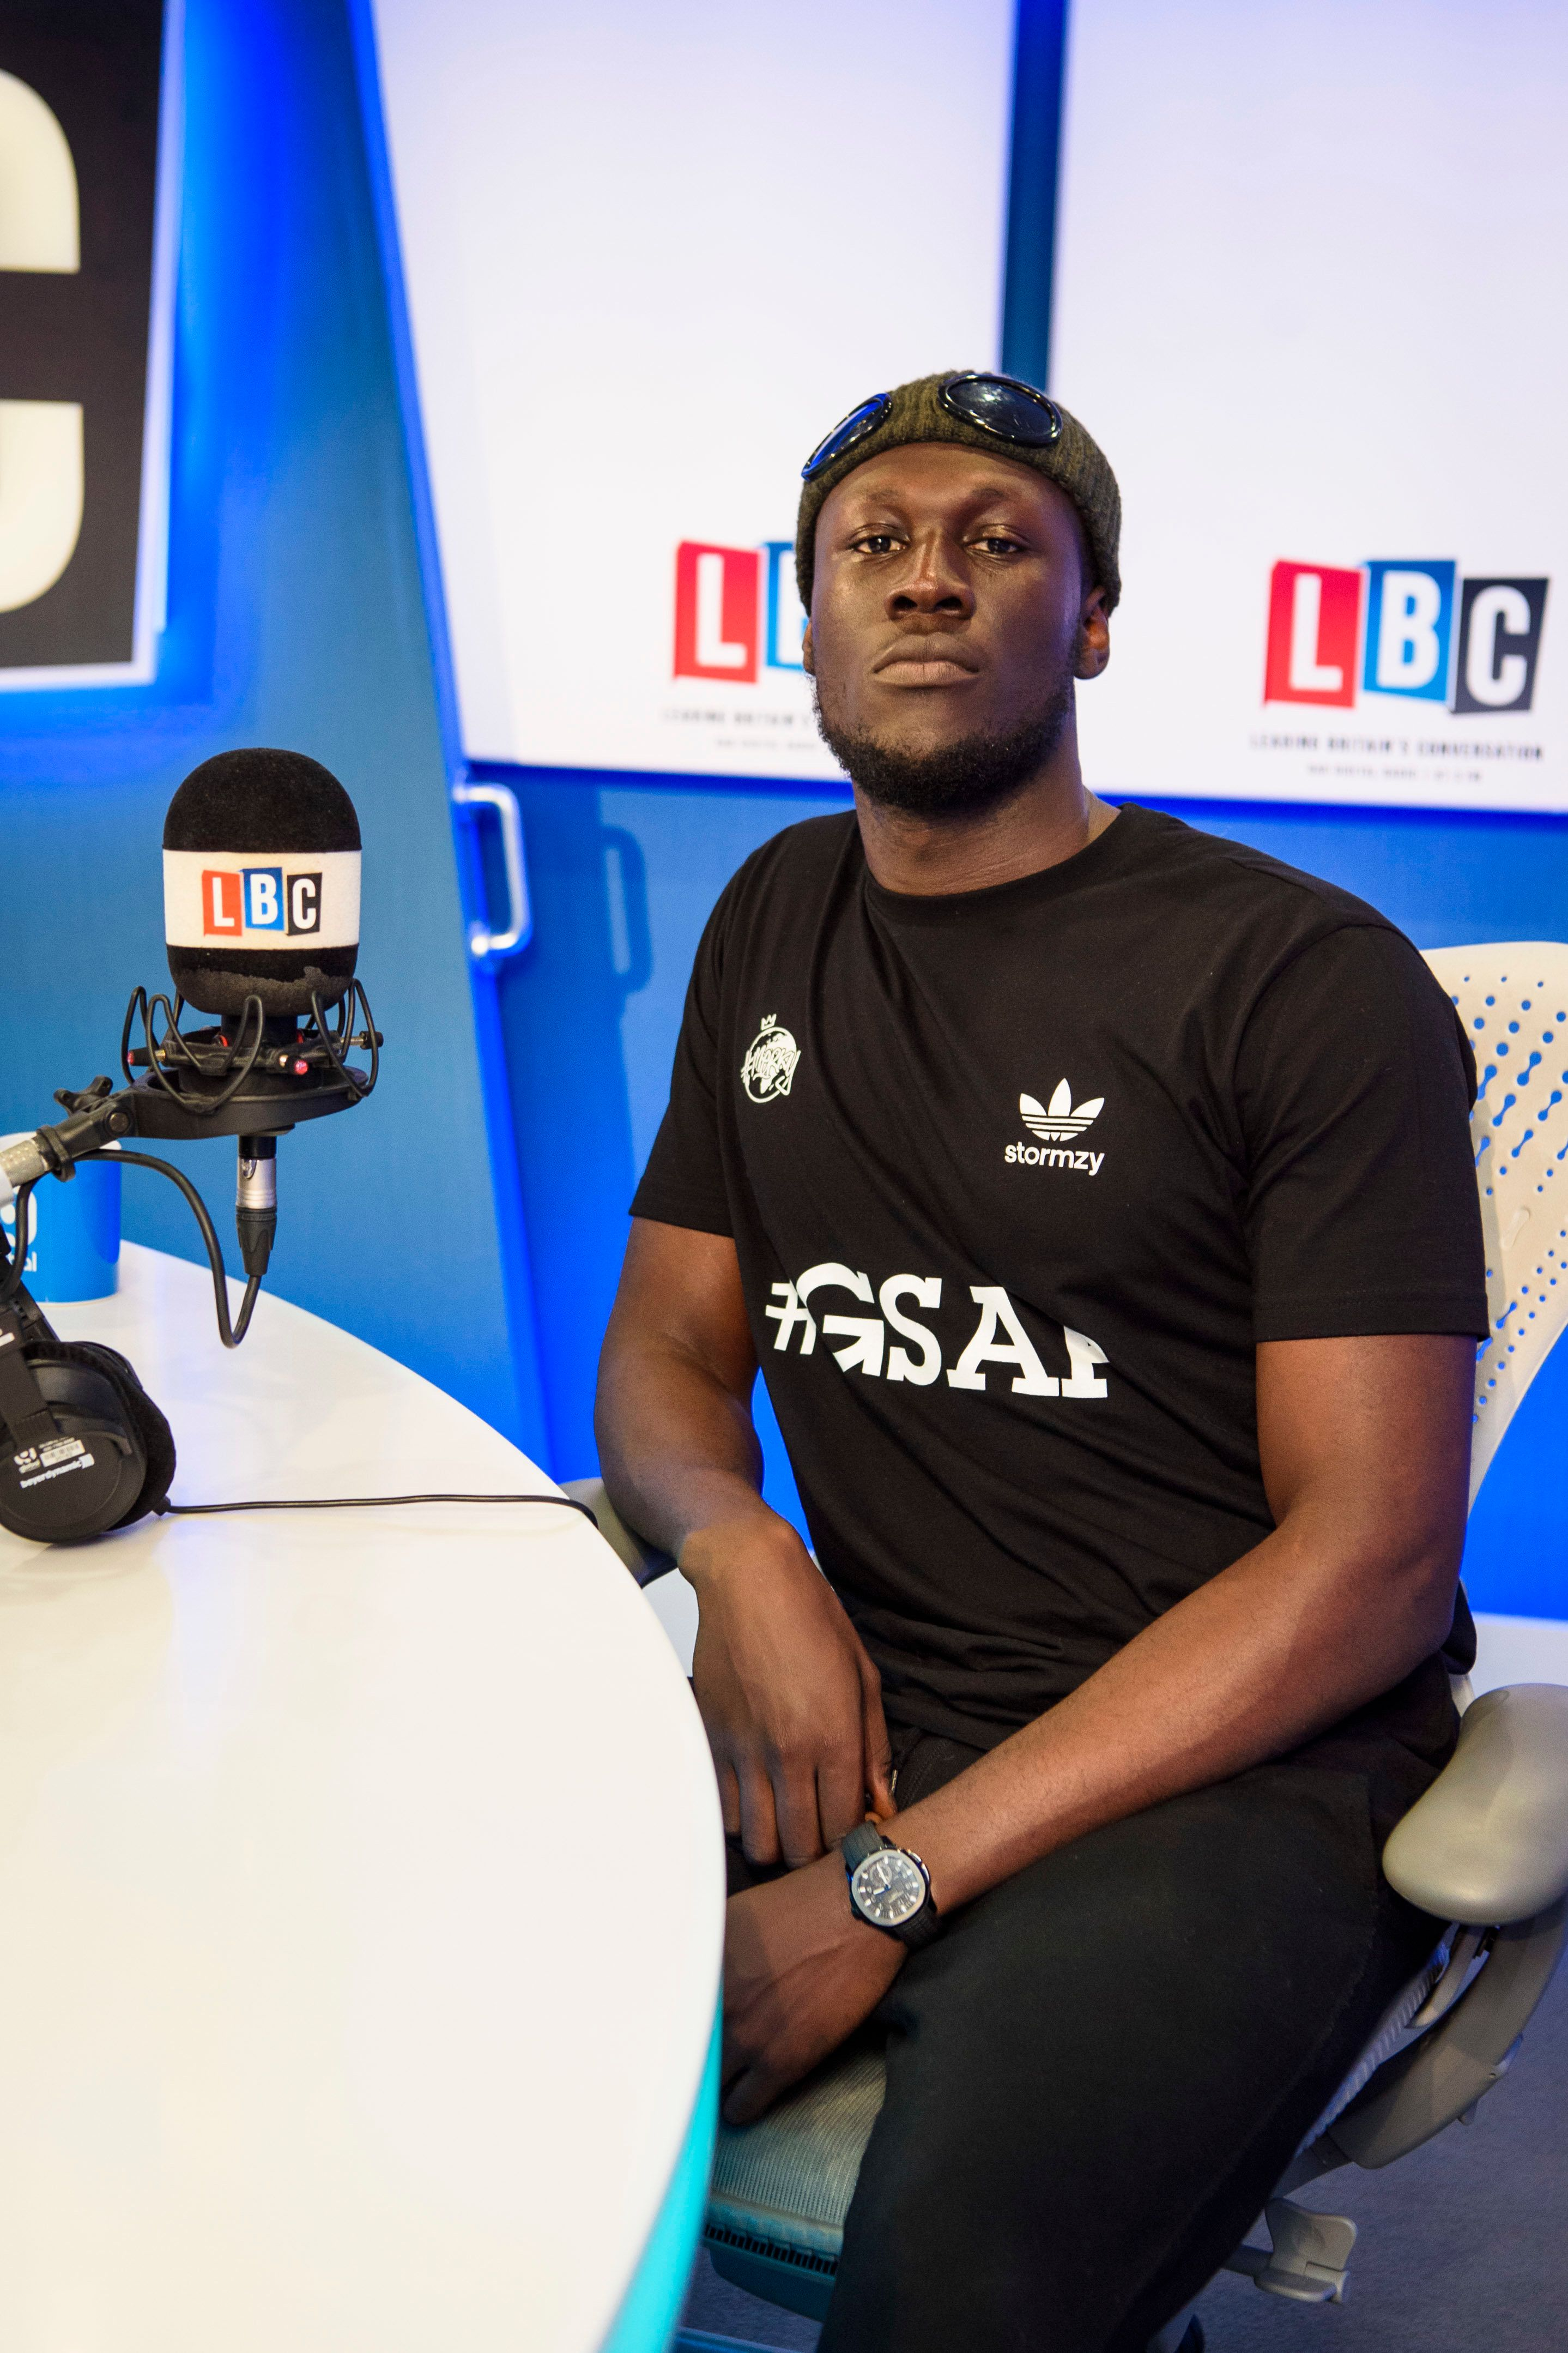 Stormzy in the LBC